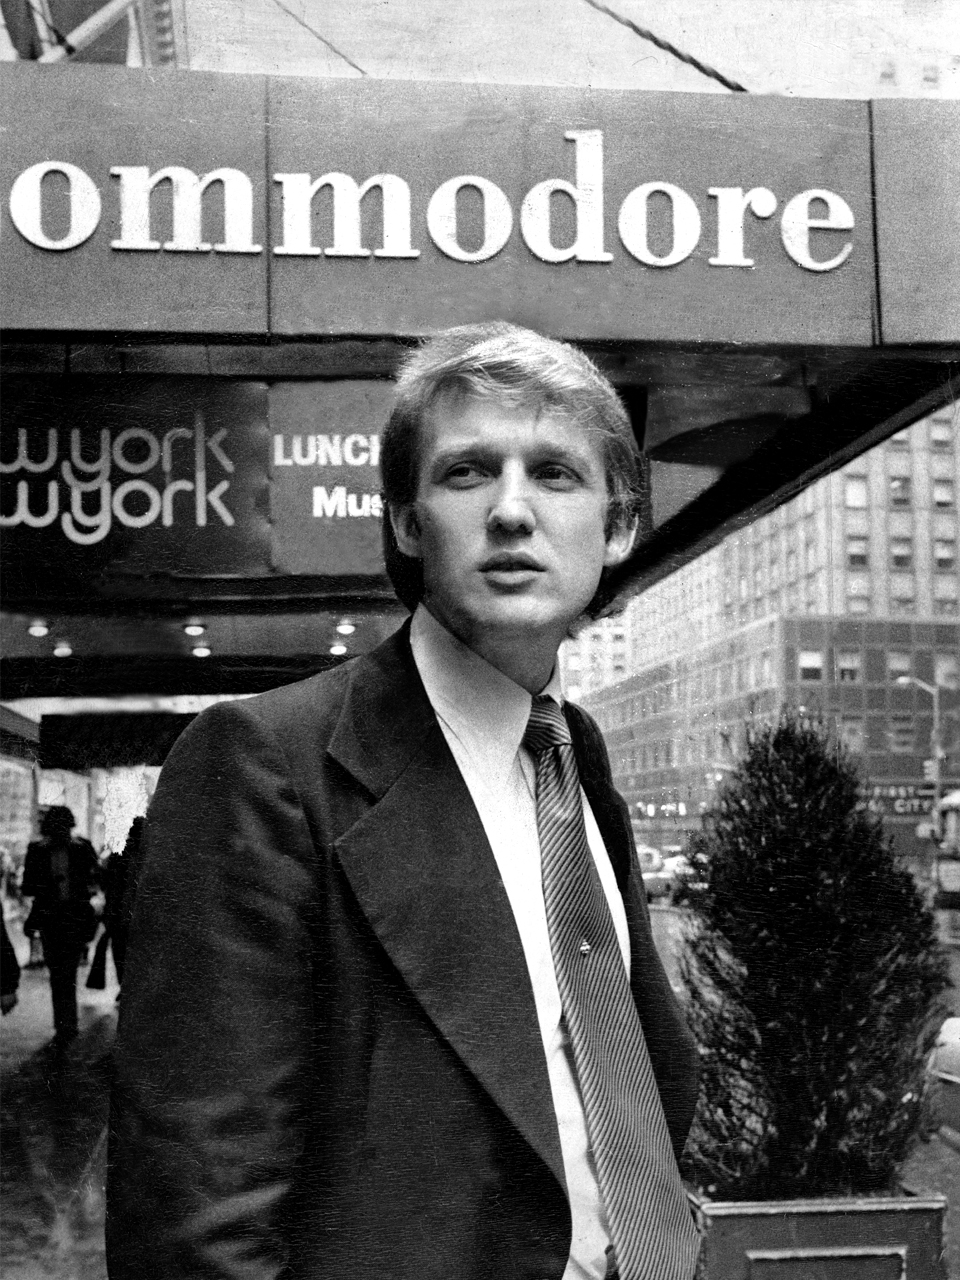 Donalds store drøm som ung var at slå igennem som bygherre på Manhatten. Foto: John Pedin / Getty Images.